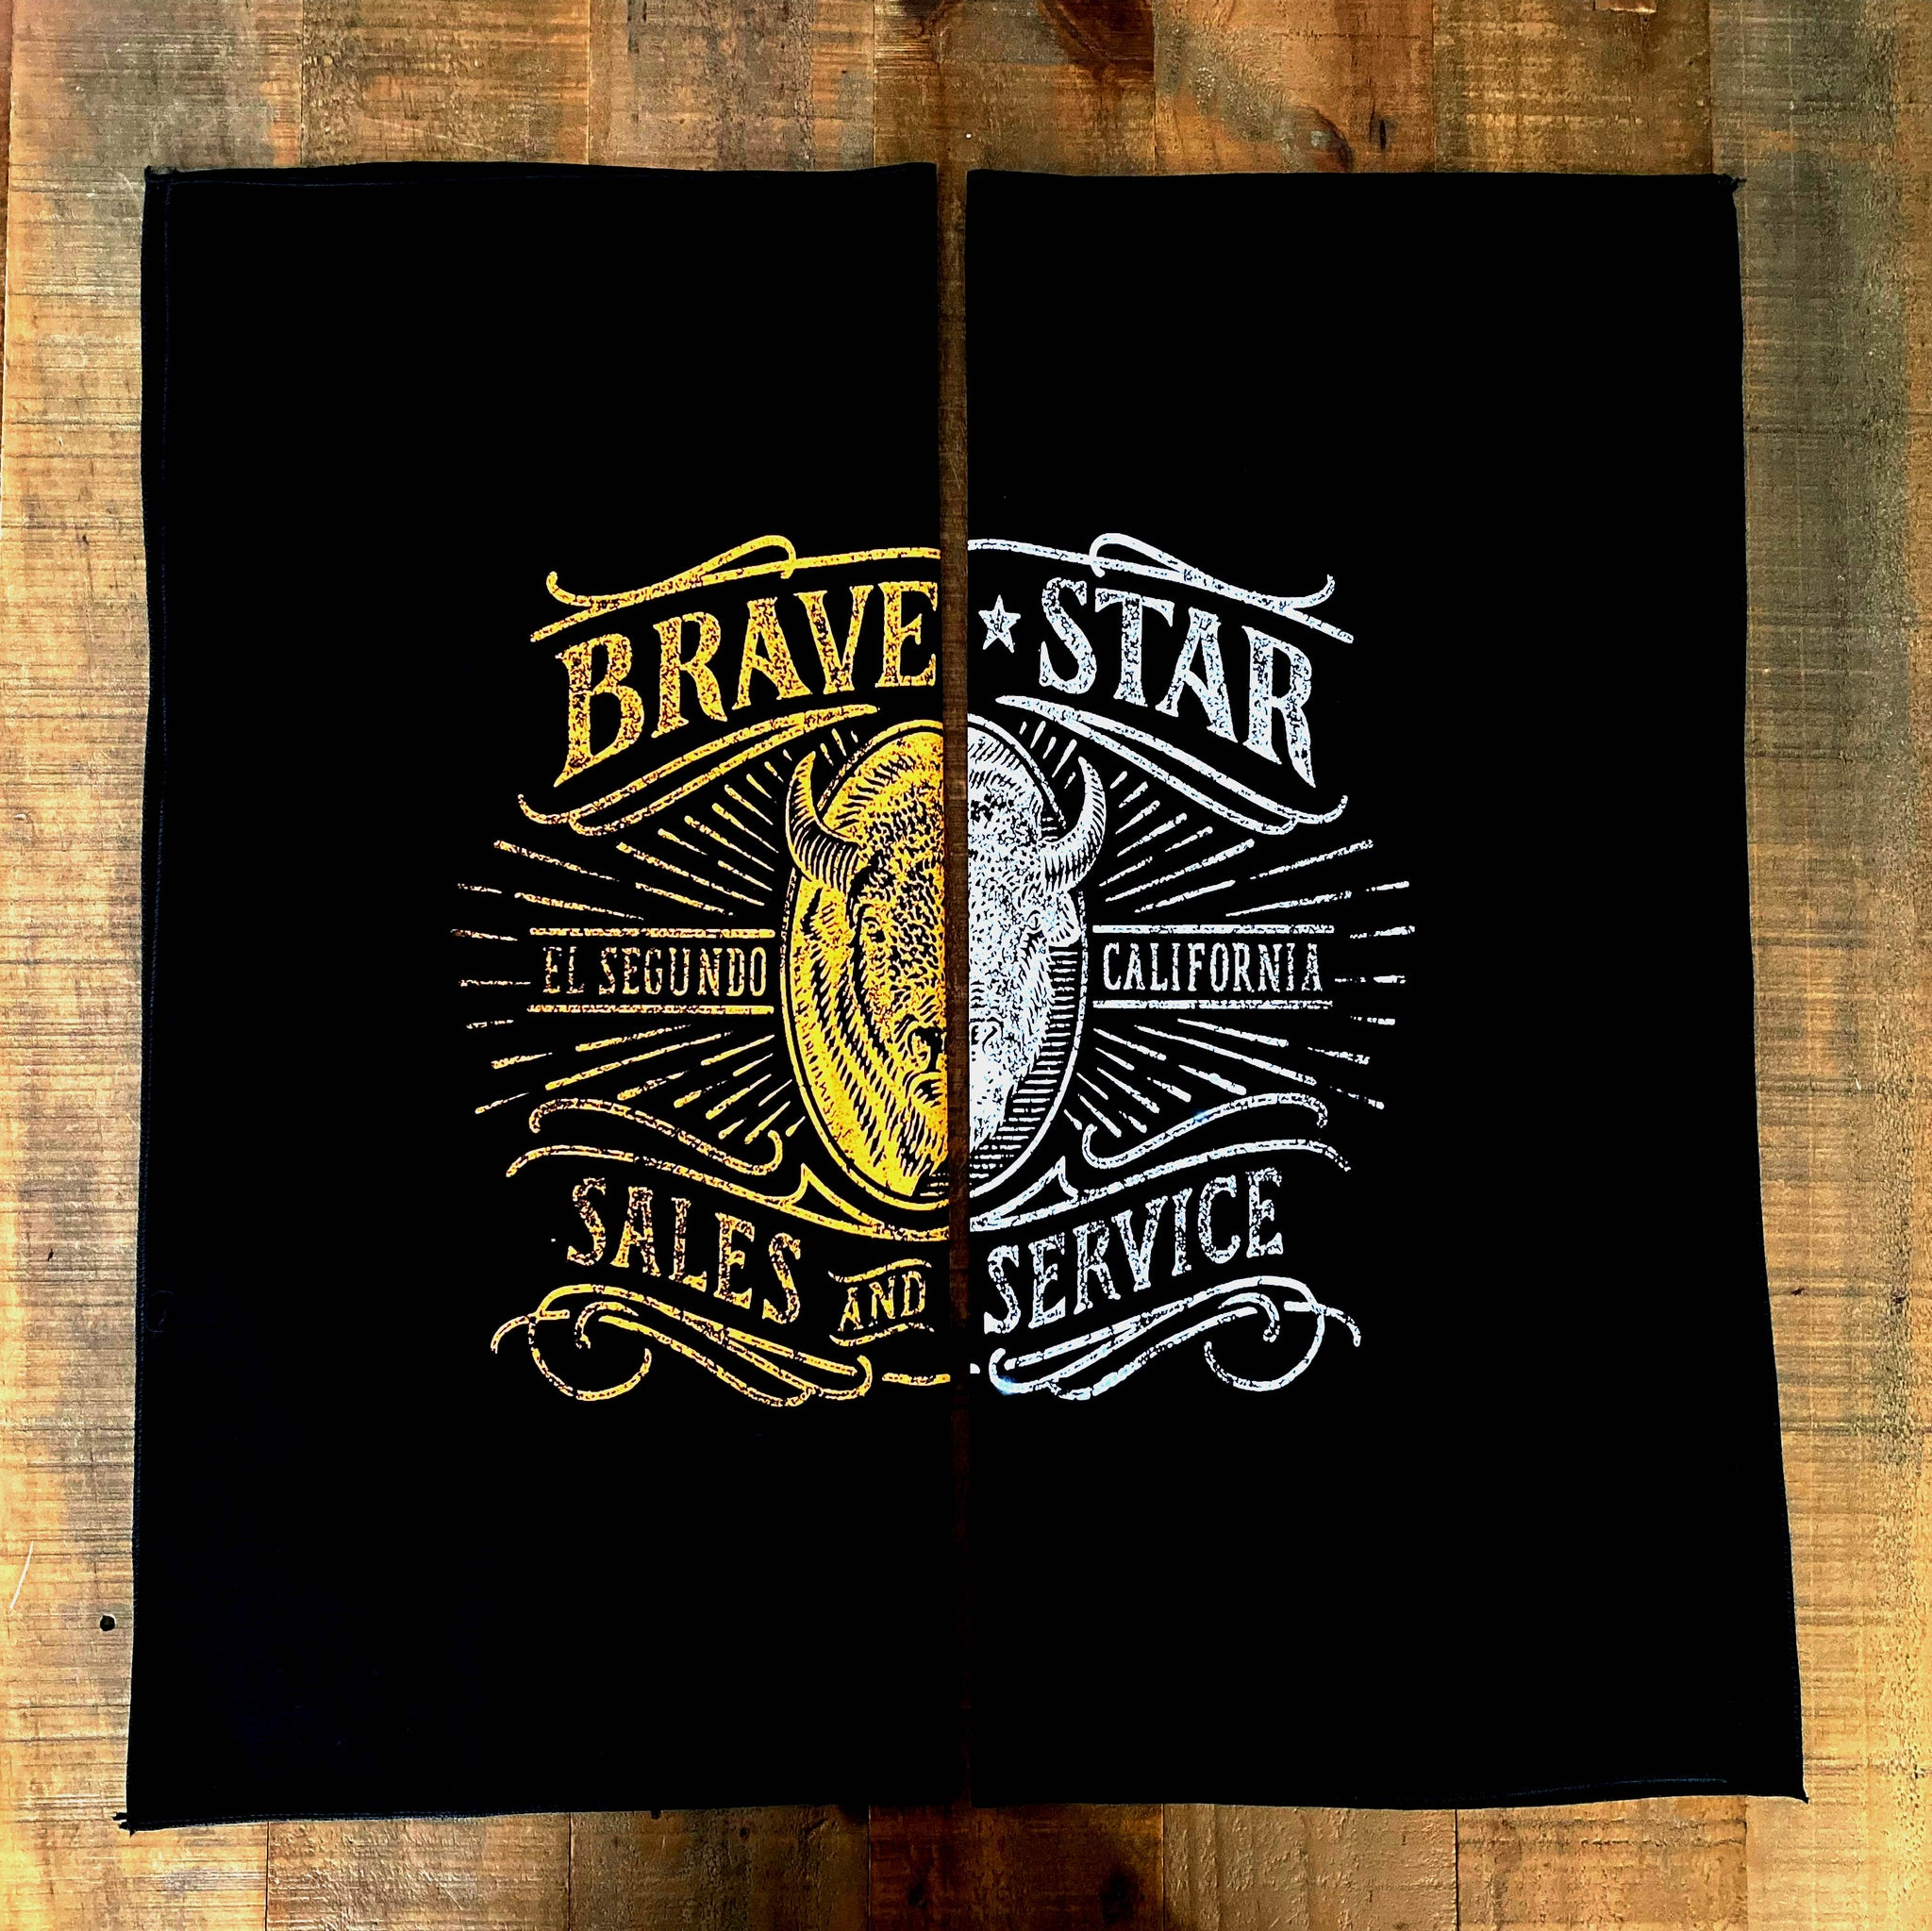 The Brave Star Shop Bandana